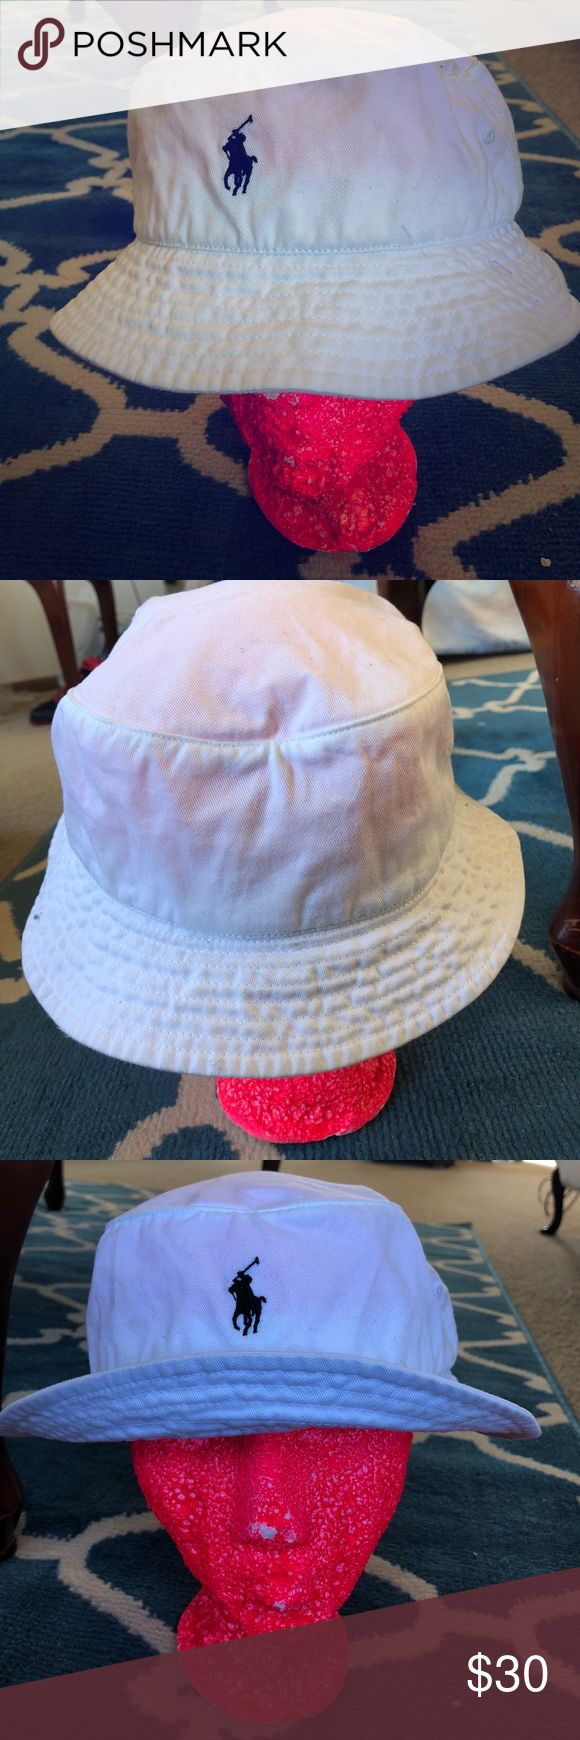 Ralph Lauren bucket hat White bucket hat. Never worn just tried on. I don't like the way it looks with my head shape so I'm selling. Love the style. Polo by Ralph Lauren Accessories Hats